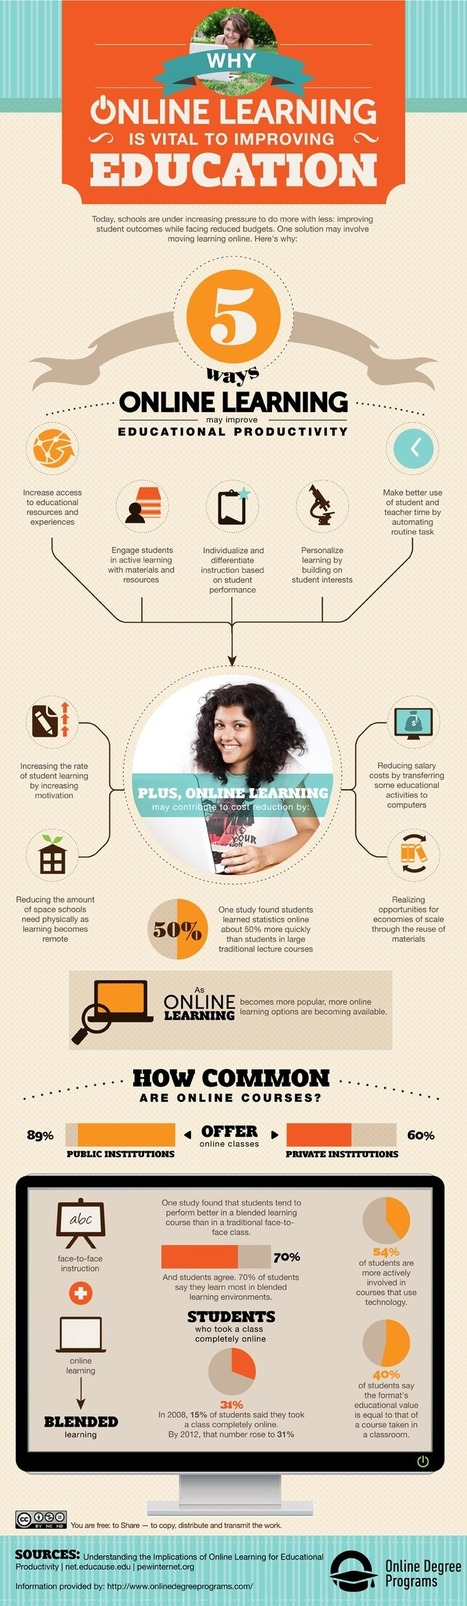 5 Ways Online Learning Improves Education Infographic | e-Learning Infographics | Retos de la educación a distancia | Scoop.it